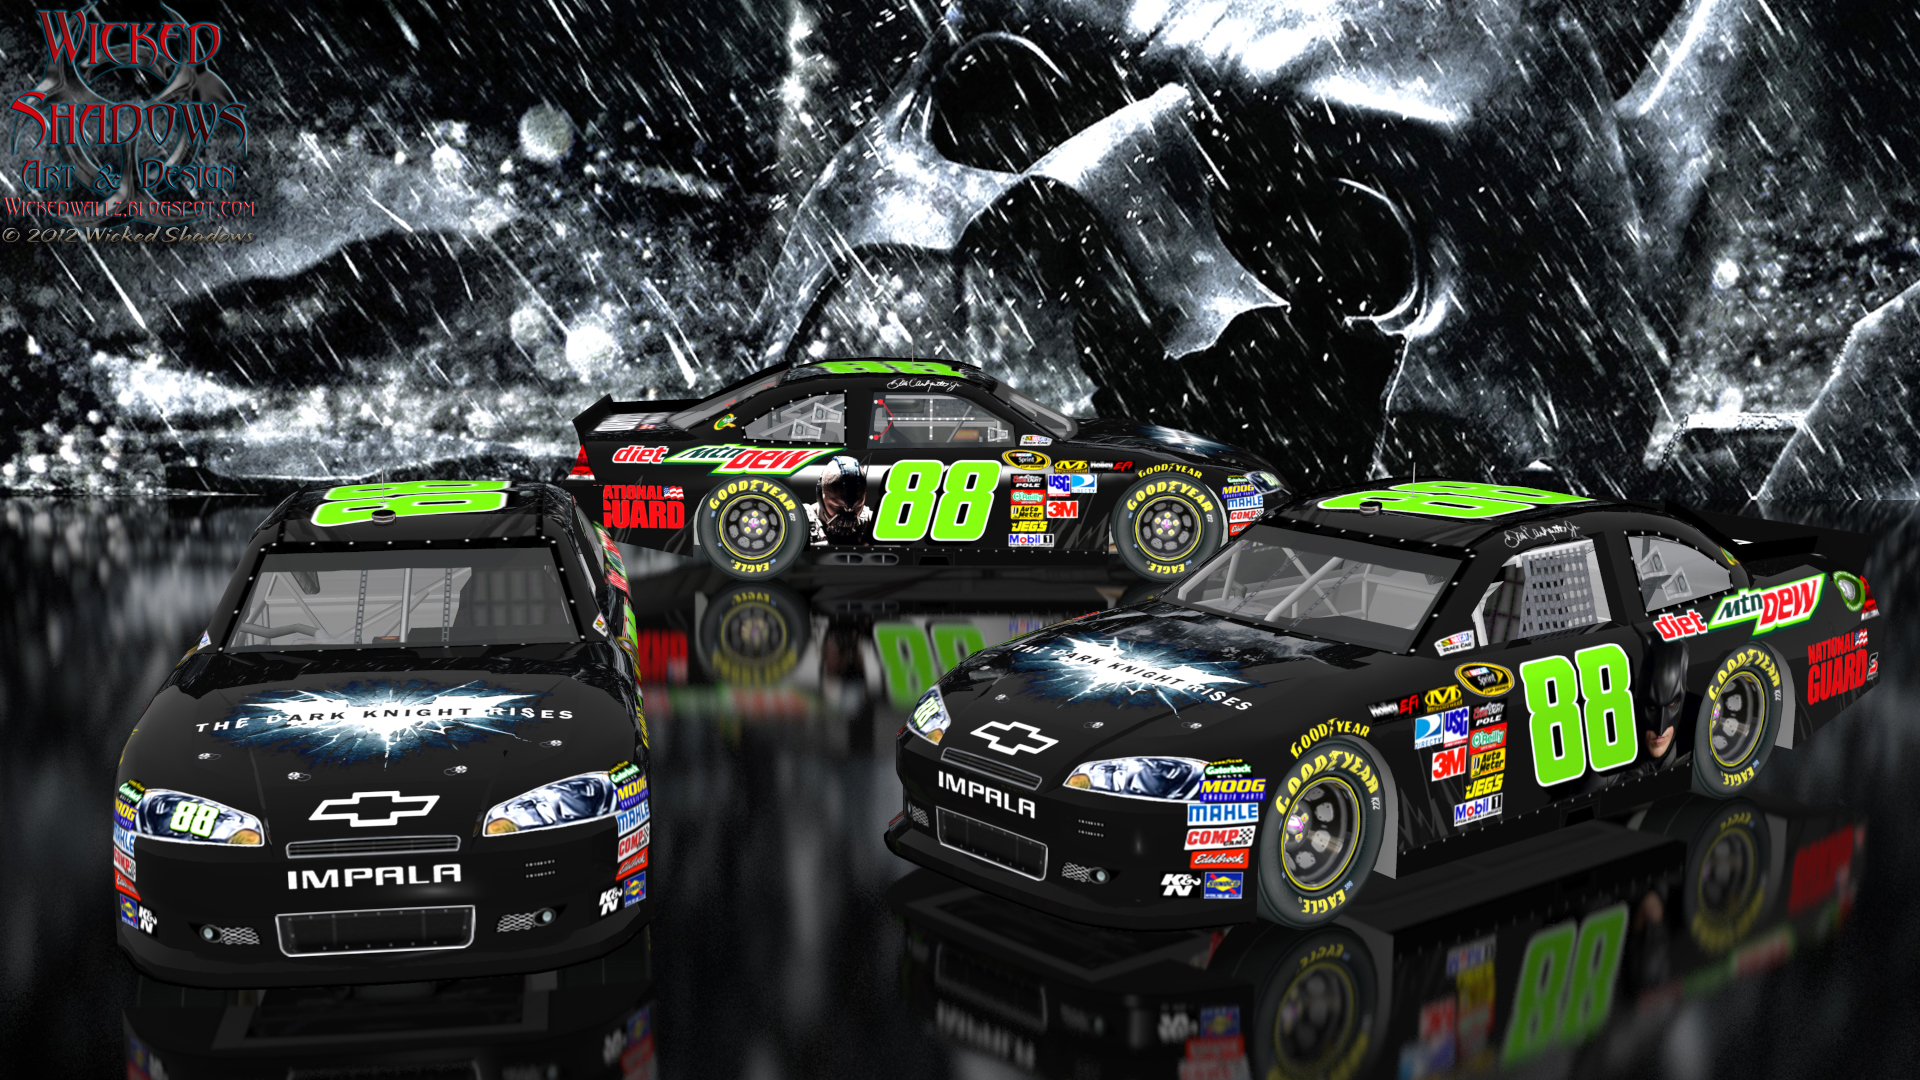 Dale Earnhardt Jr 88 Wallpaper, Images, Wallpapers of Dale ...